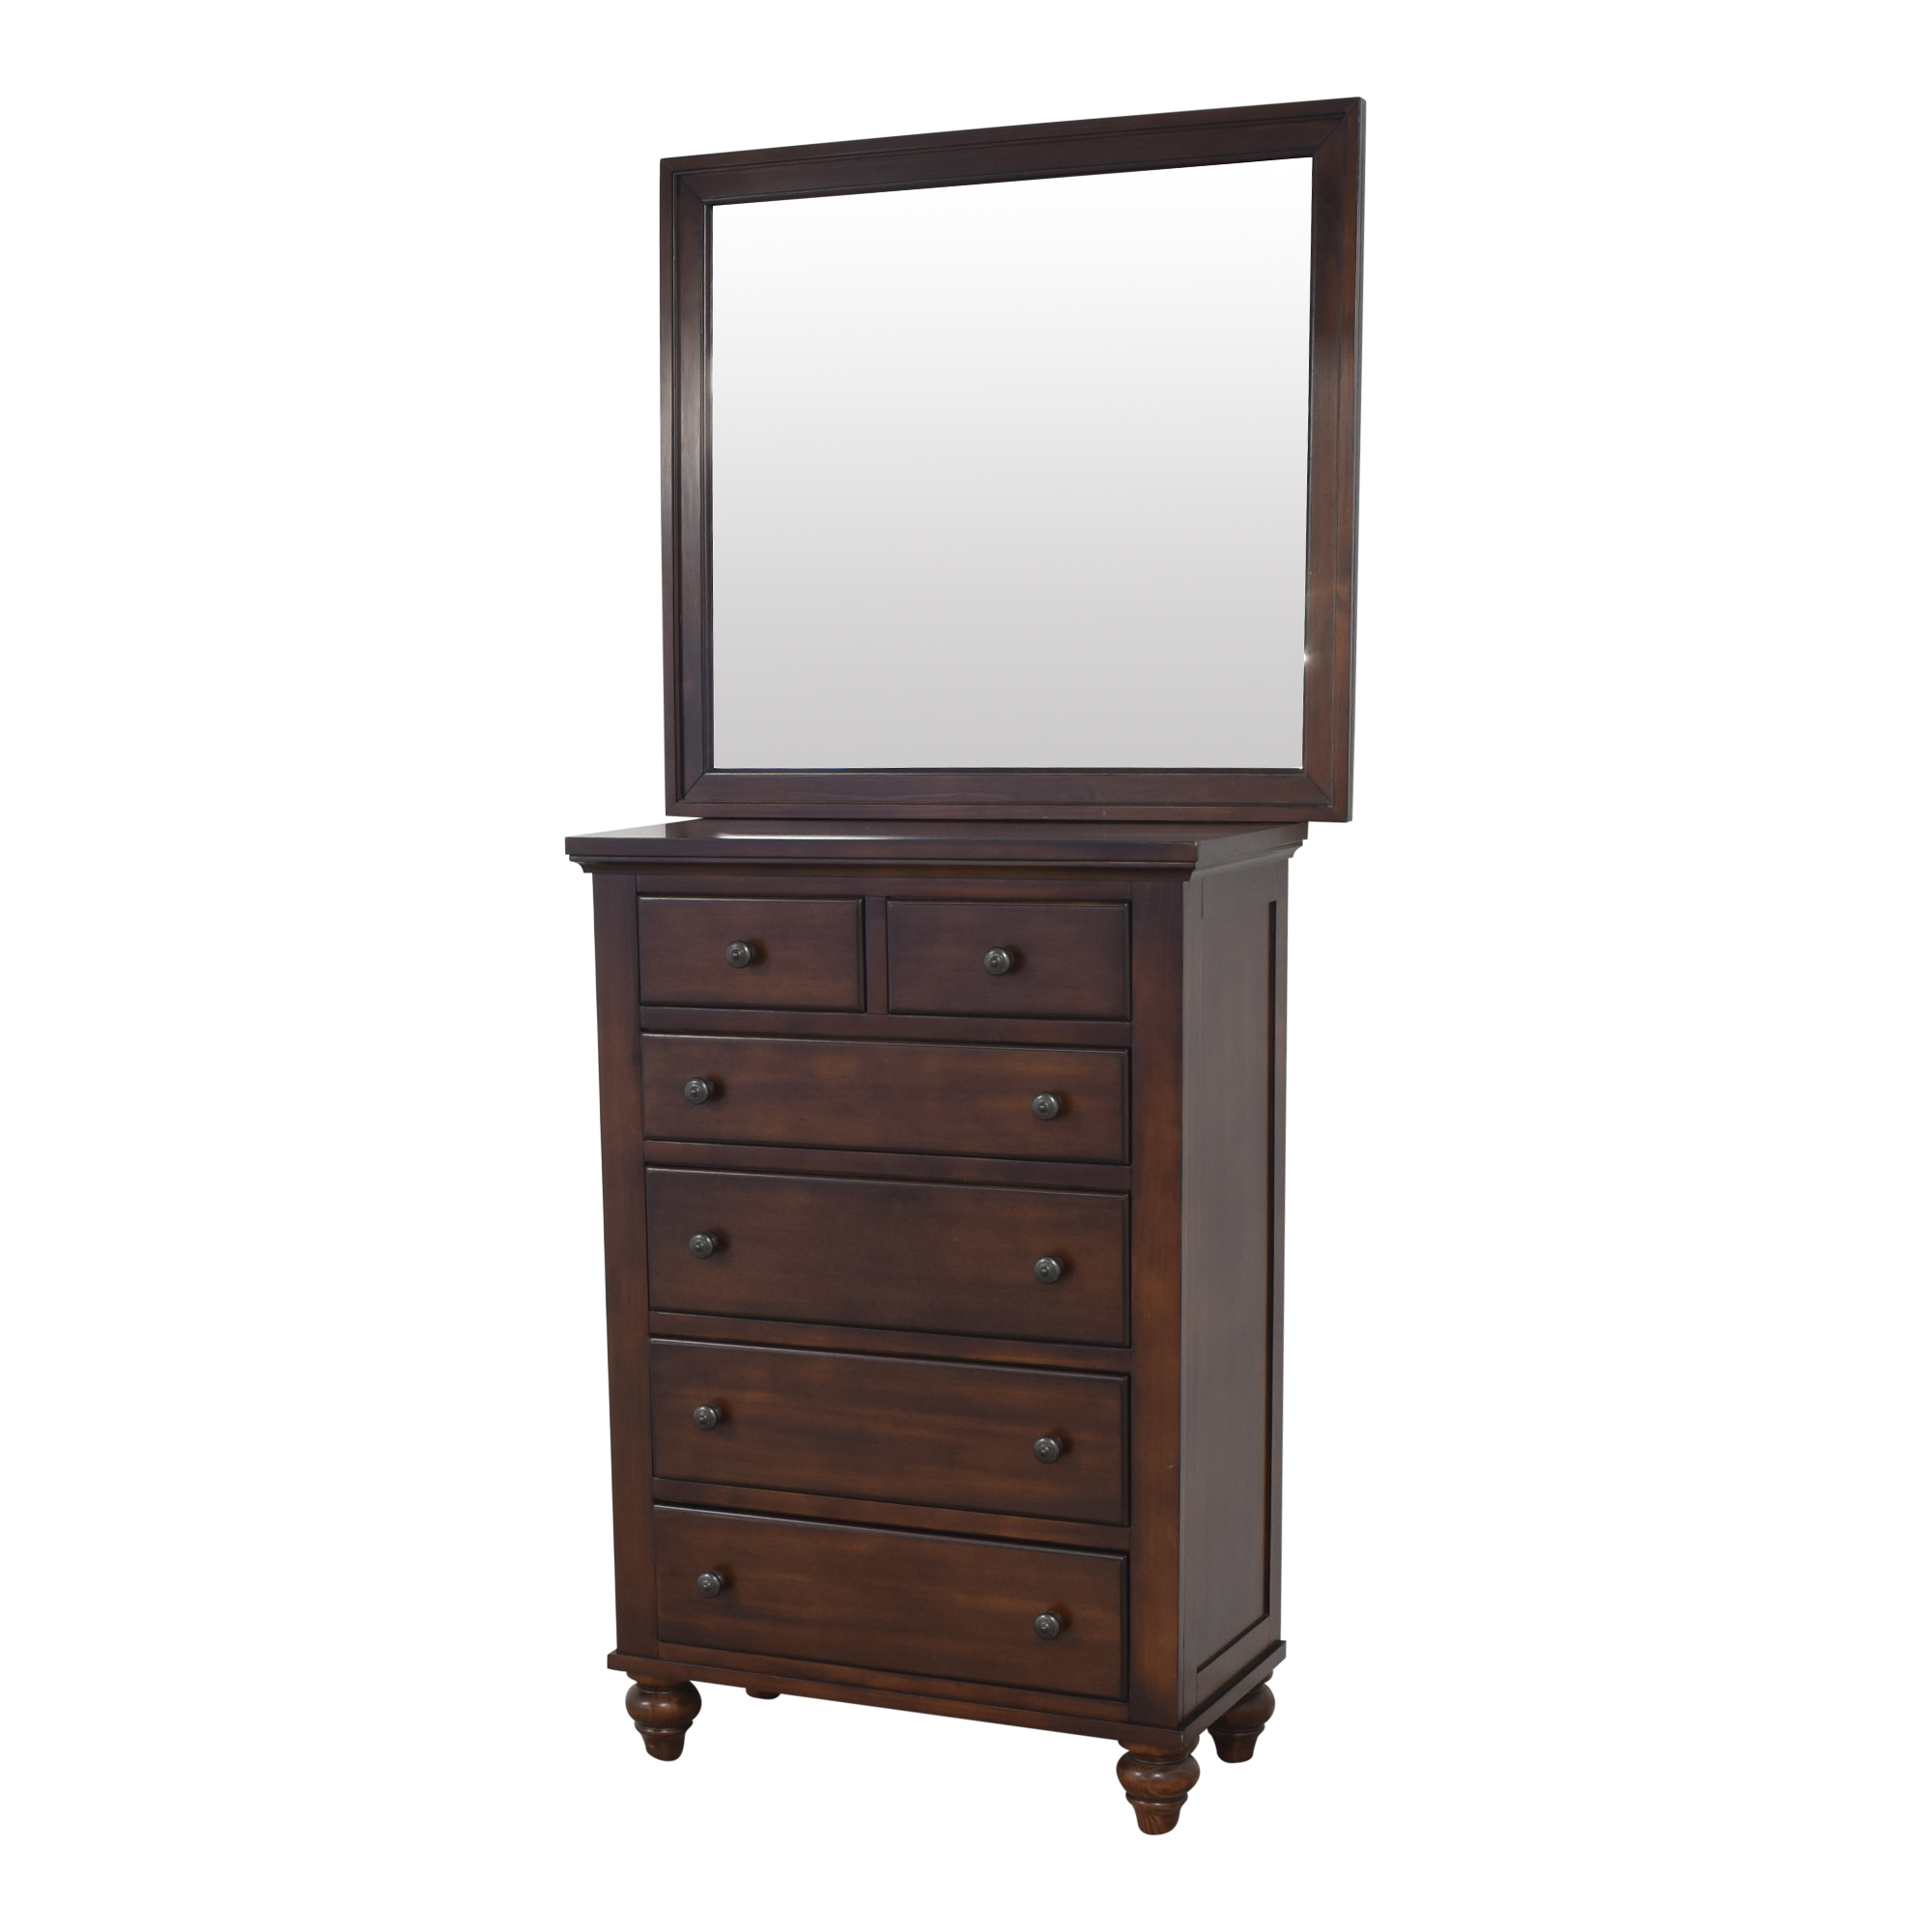 Raymour & Flanigan Six Drawer Chest with Mirror Raymour & Flanigan